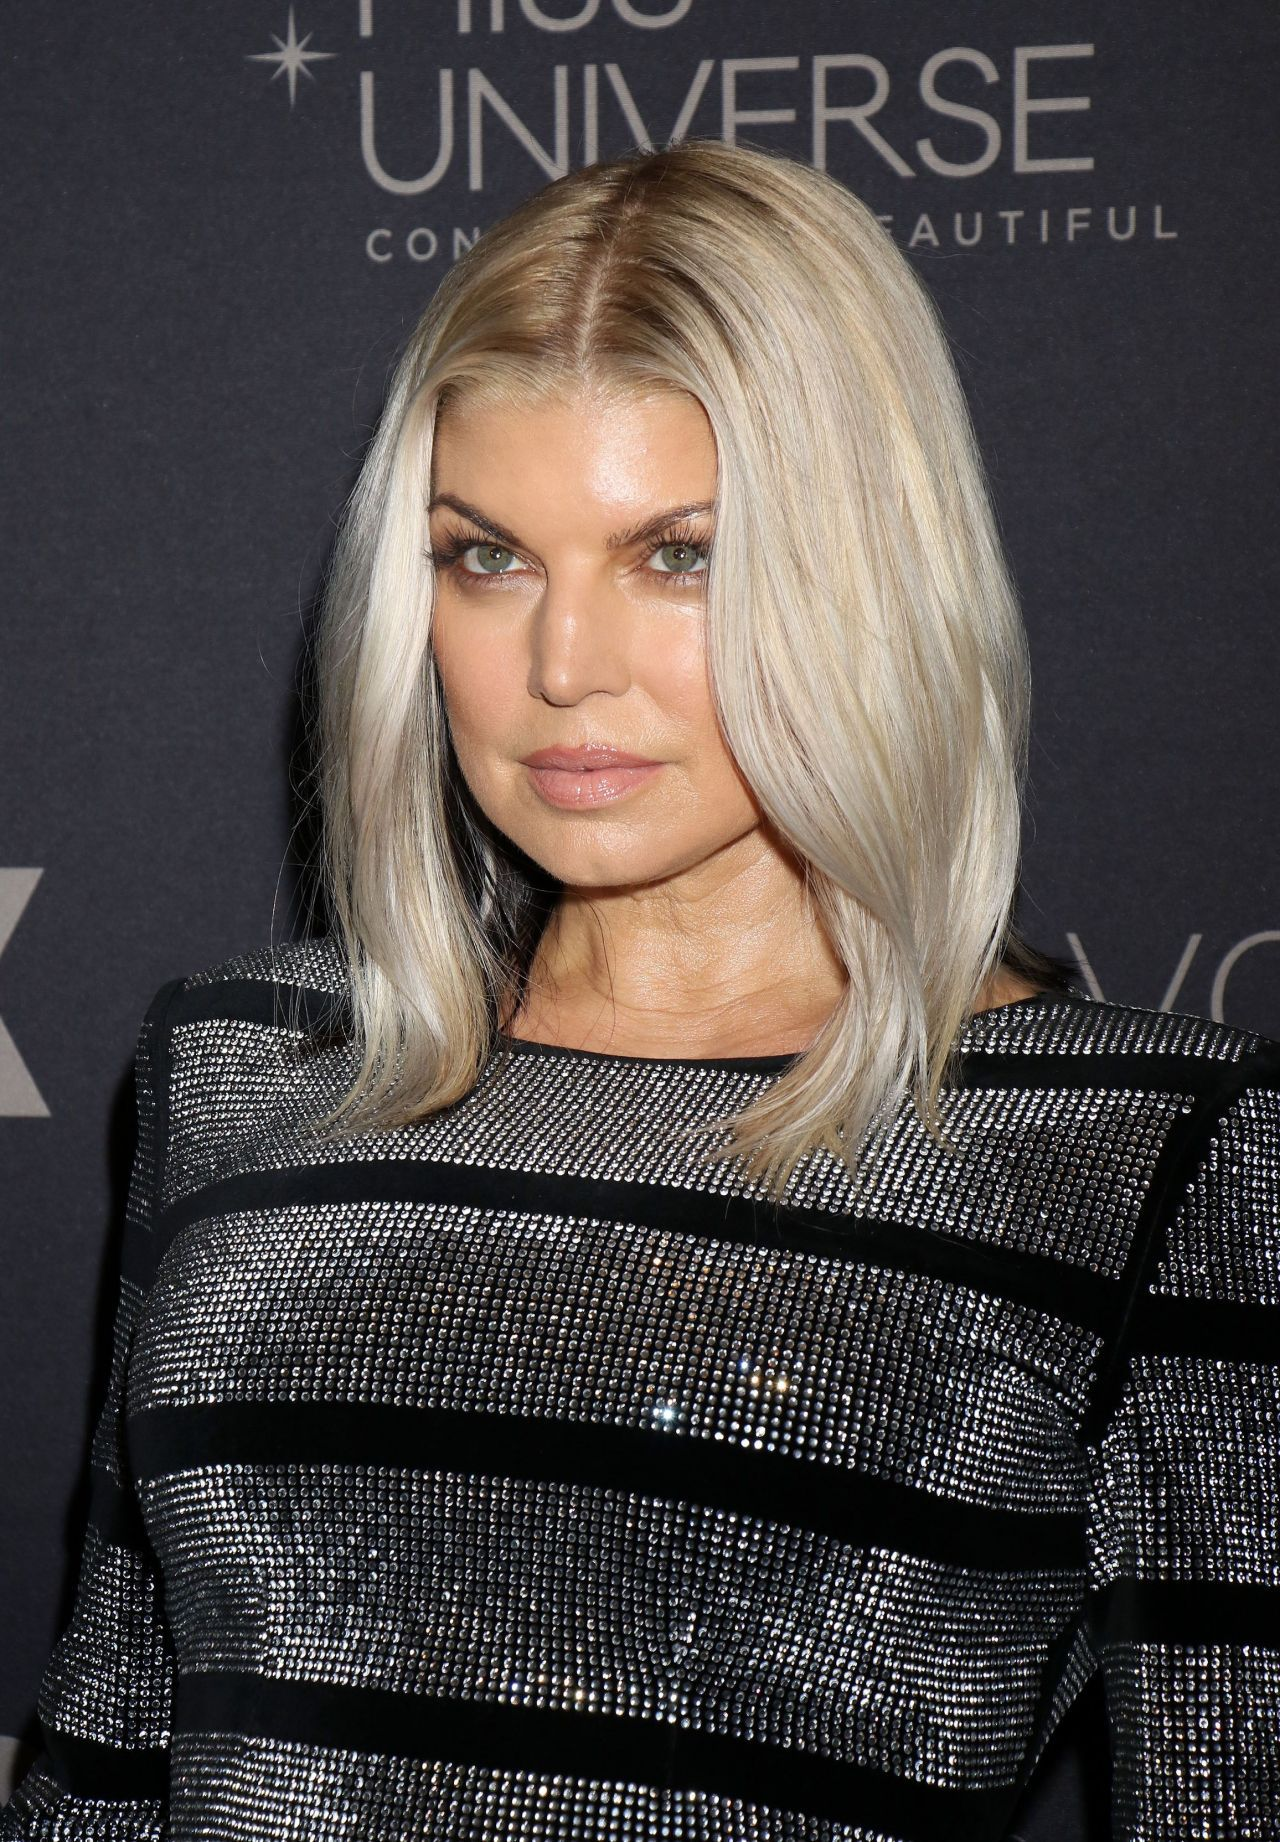 Fergie Casual Long Layered Hairstyle Fergie Casual Long Layered Hairstyle new picture